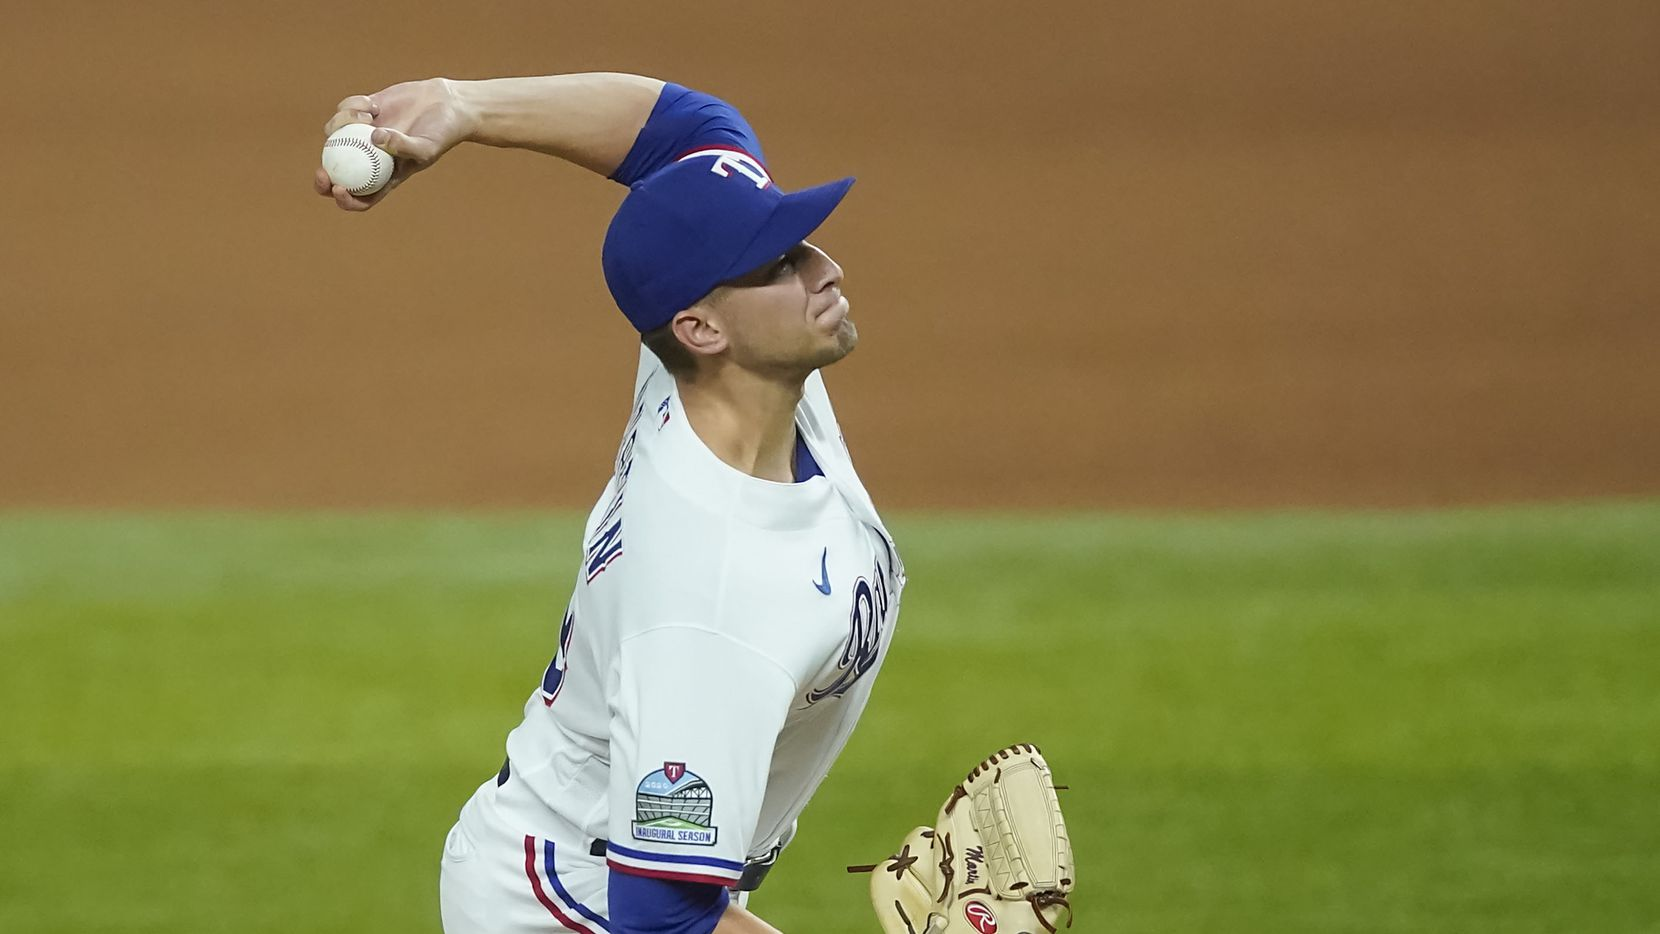 Texas Rangers pitcher Brett Martin delivers during the seventh inning against the Los Angeles Angels at Globe Life Field on Wednesday, Sept. 9, 2020.